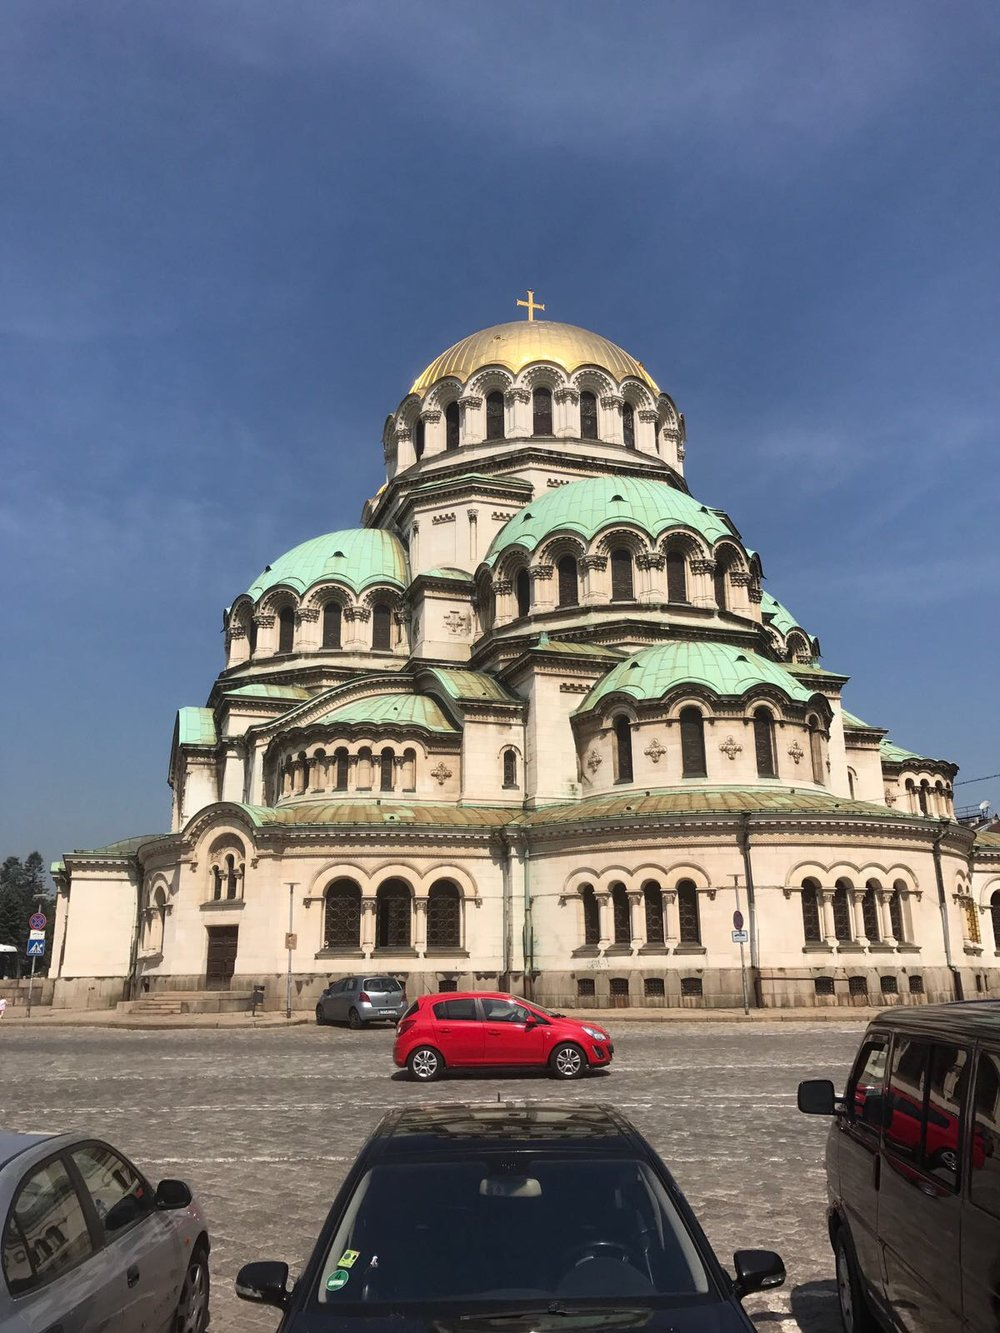 Alexander Nevsky Cathedral in Sofia (Bulgaria) with a red car in the foreground